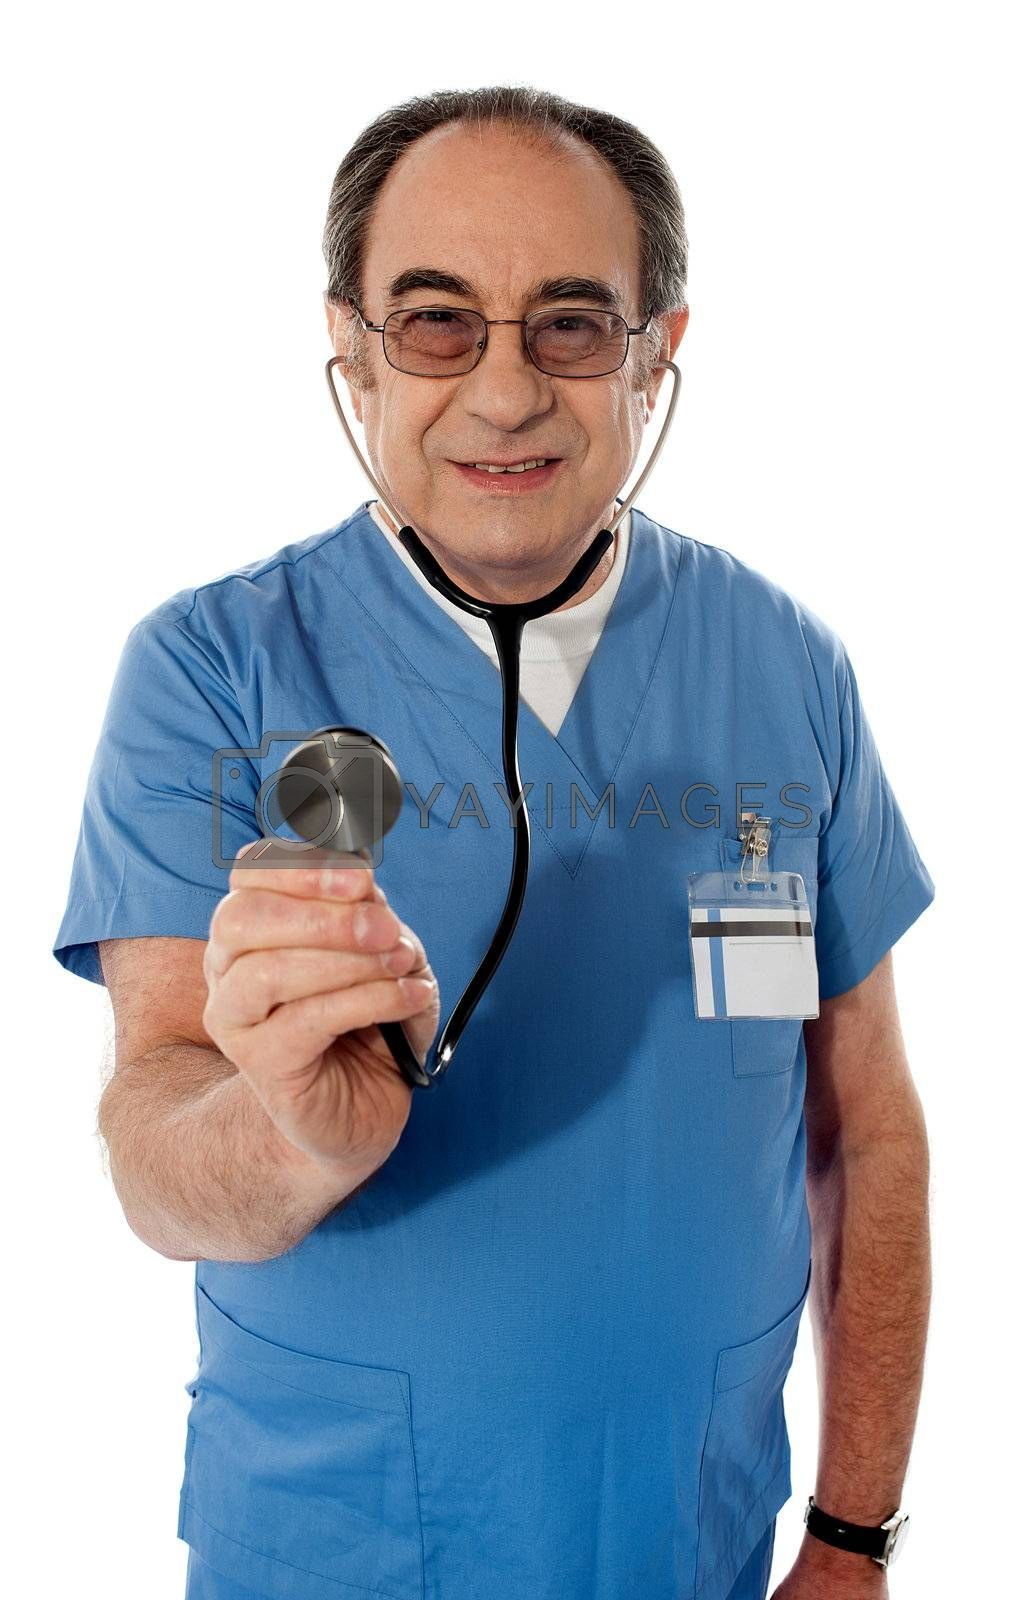 Senior specialist checking your heartbeats